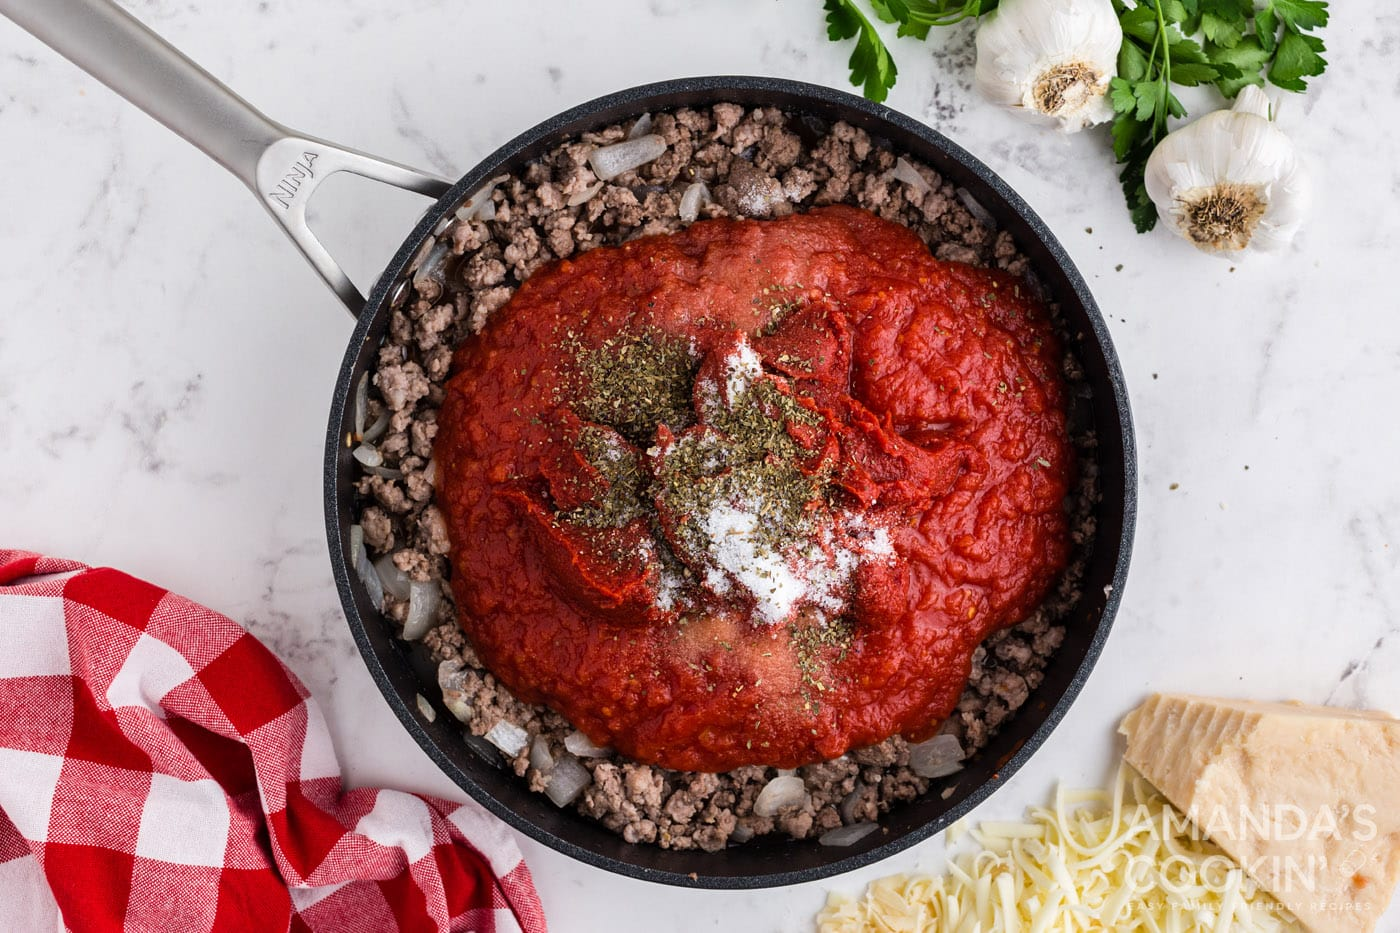 tomato sauce on top of cooked meat in a skillet